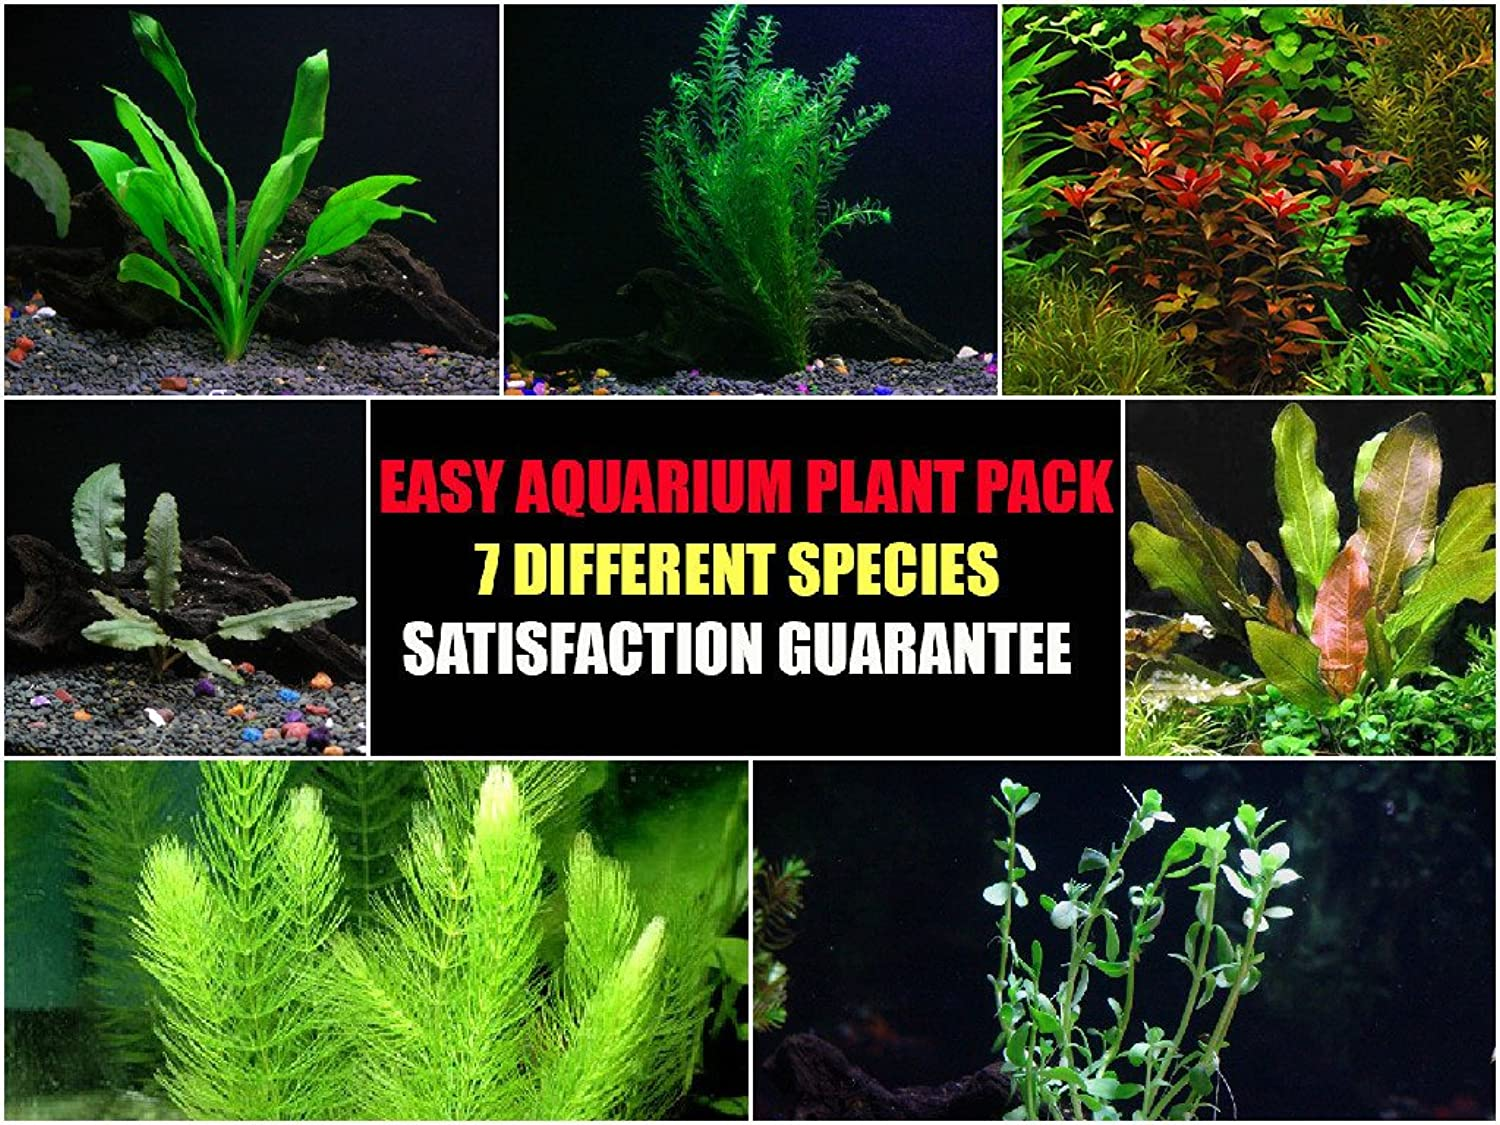 Easy Live Aquarium Plants Package  7 Kinds  Anacharis, Amazon and More